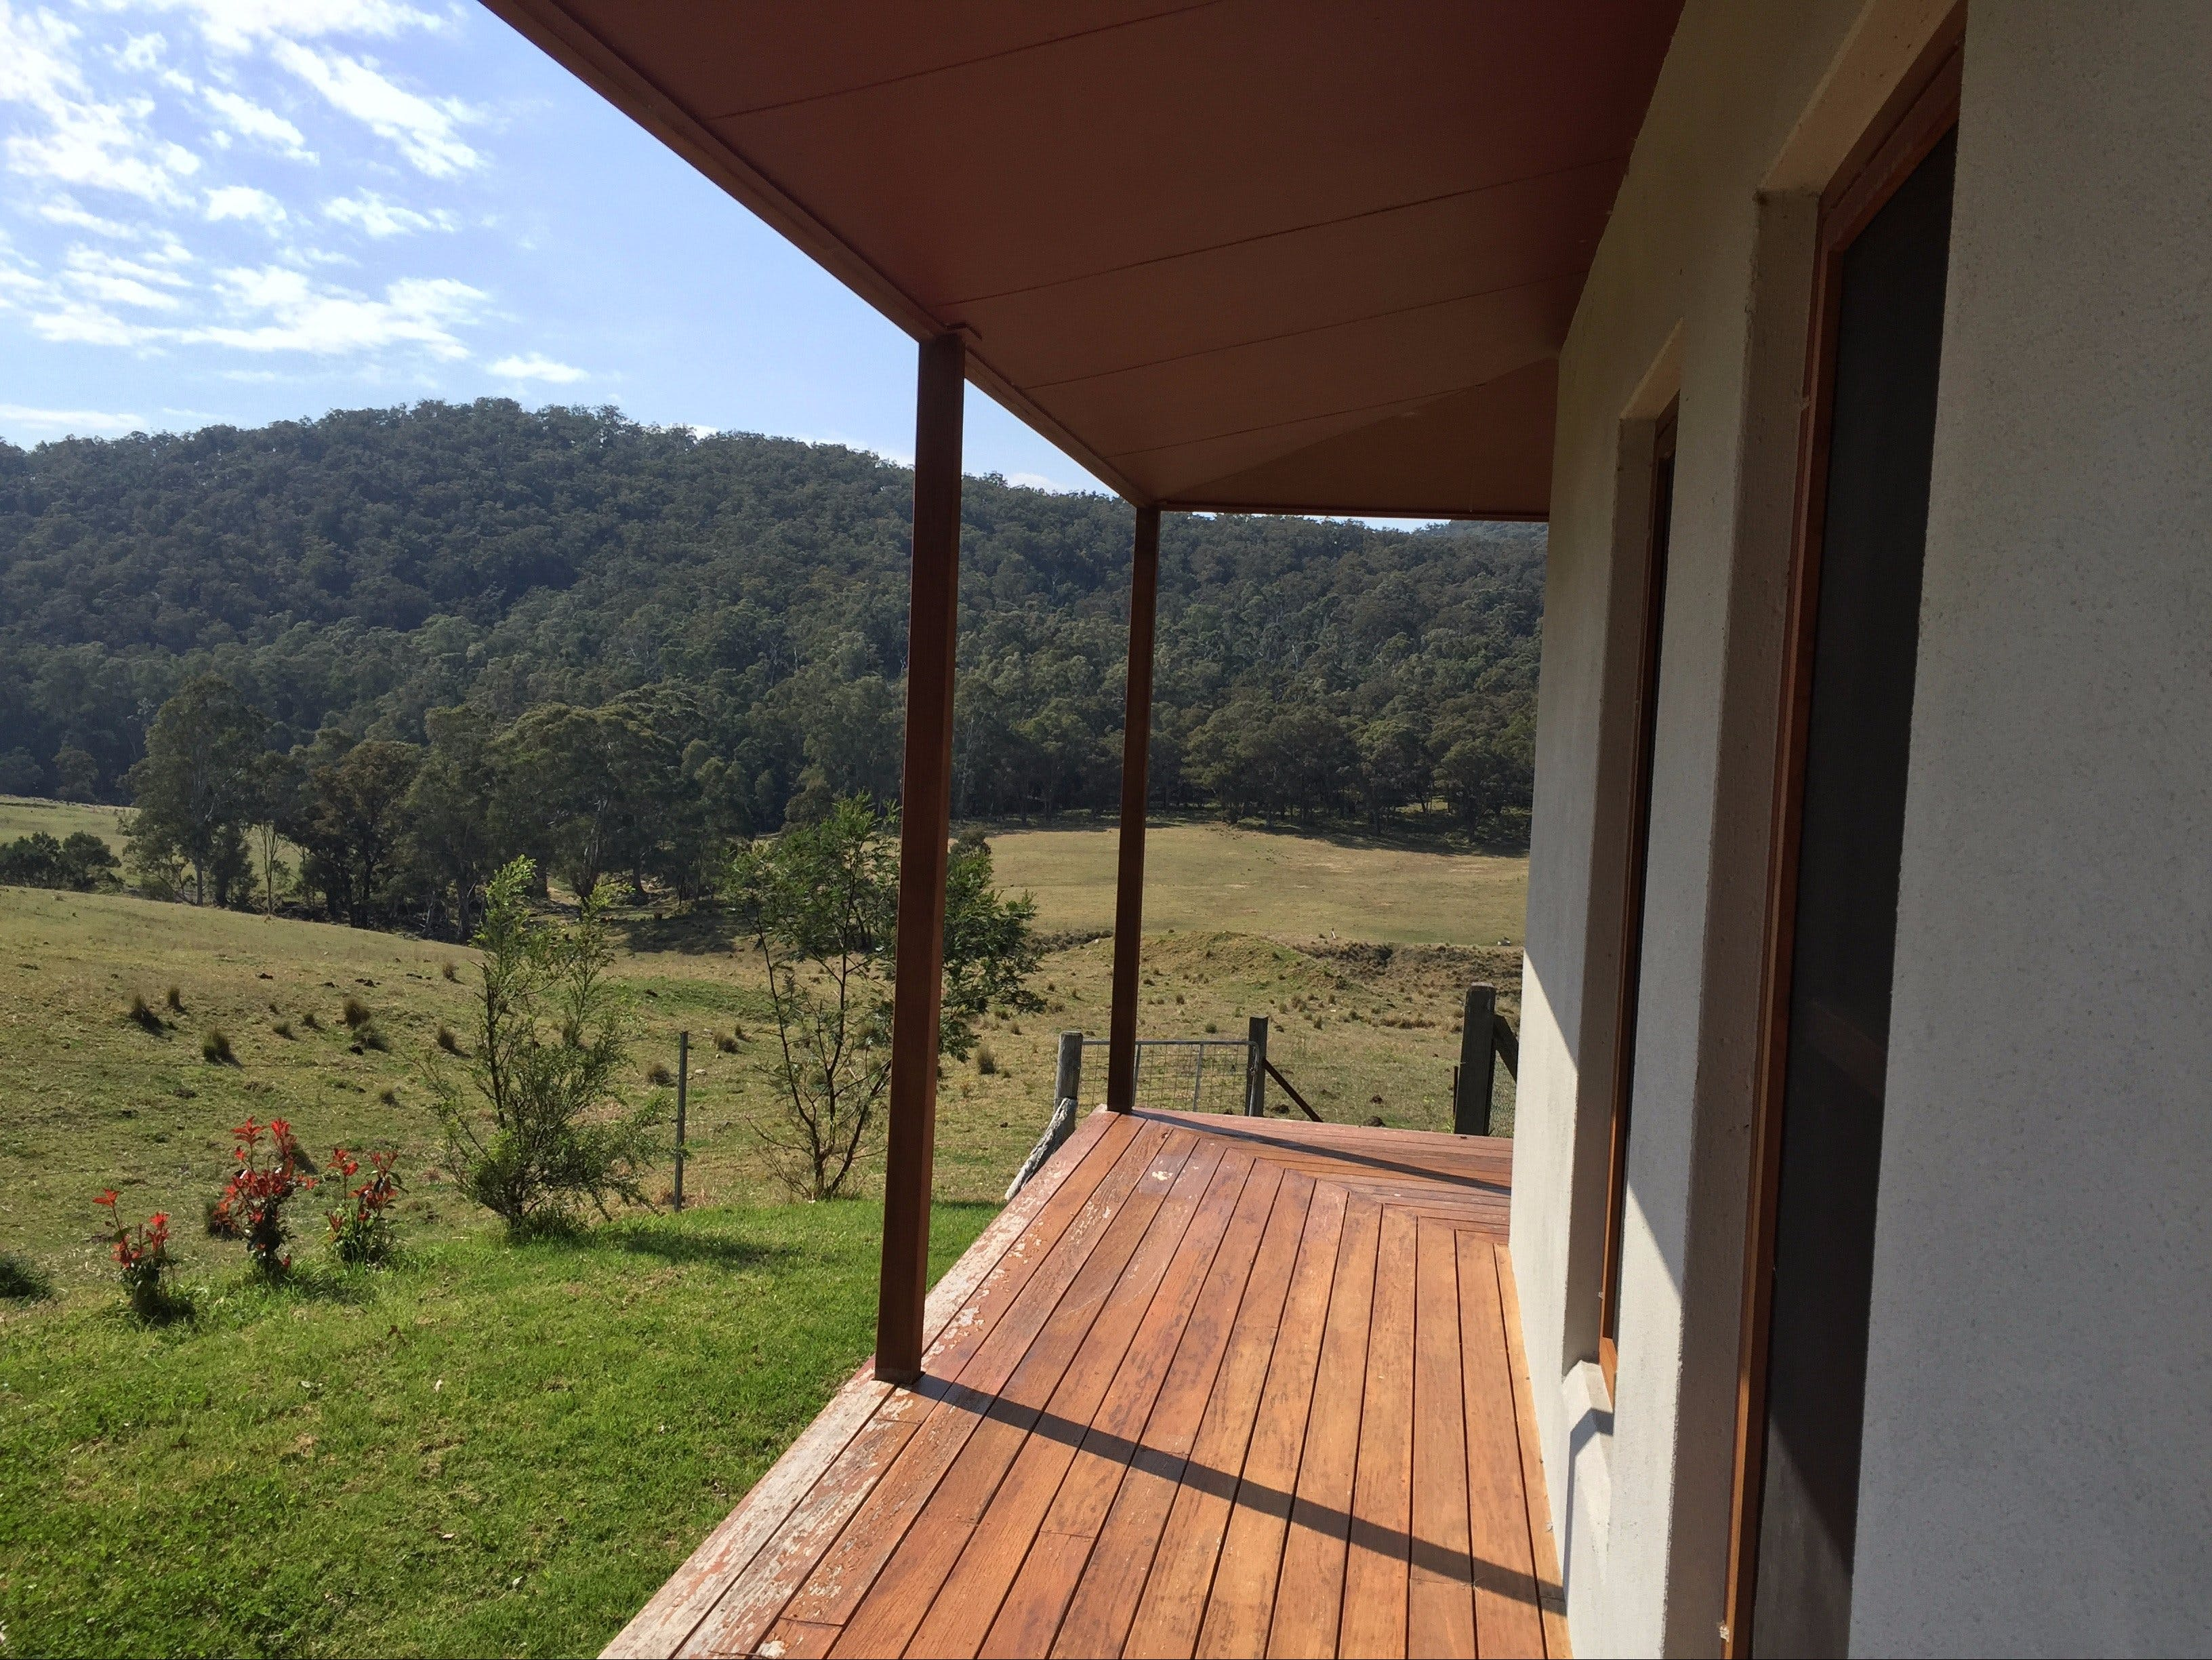 Highland Cattle Farm Stay - Accommodation Resorts